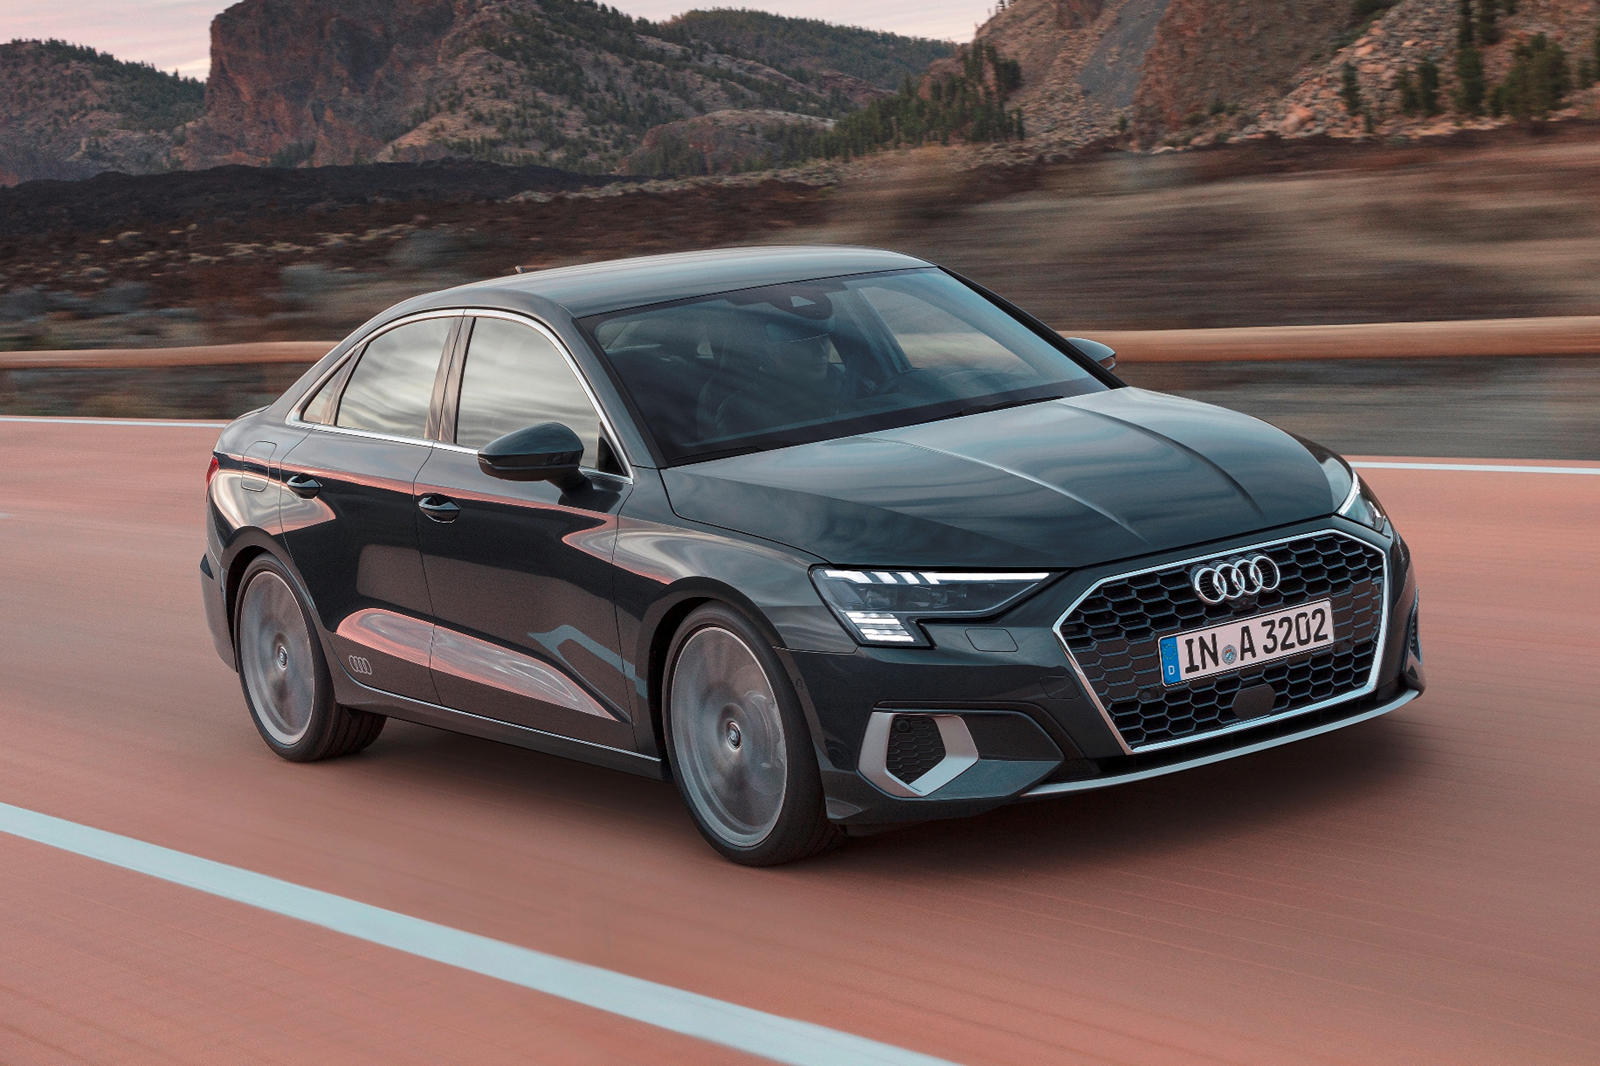 2022 Audi A3 Sedan Coming With Sharper Styling And ...